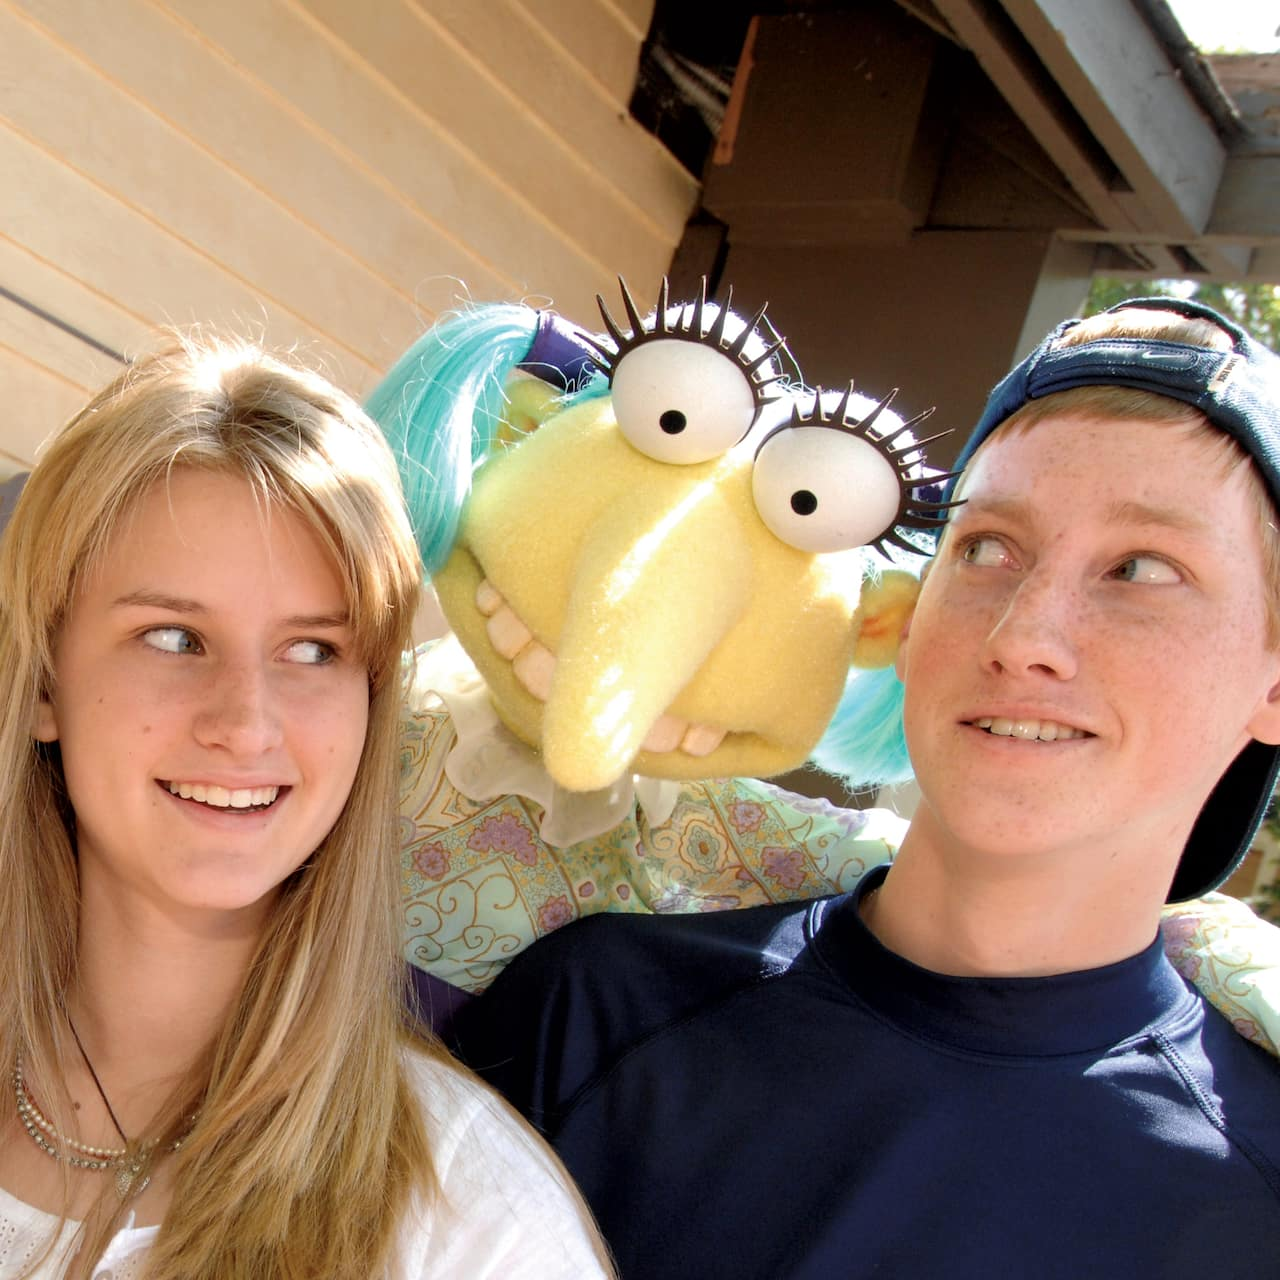 A teen boy and girl near a sign reading 'The Jim Henson Company' are surprised by a puppet